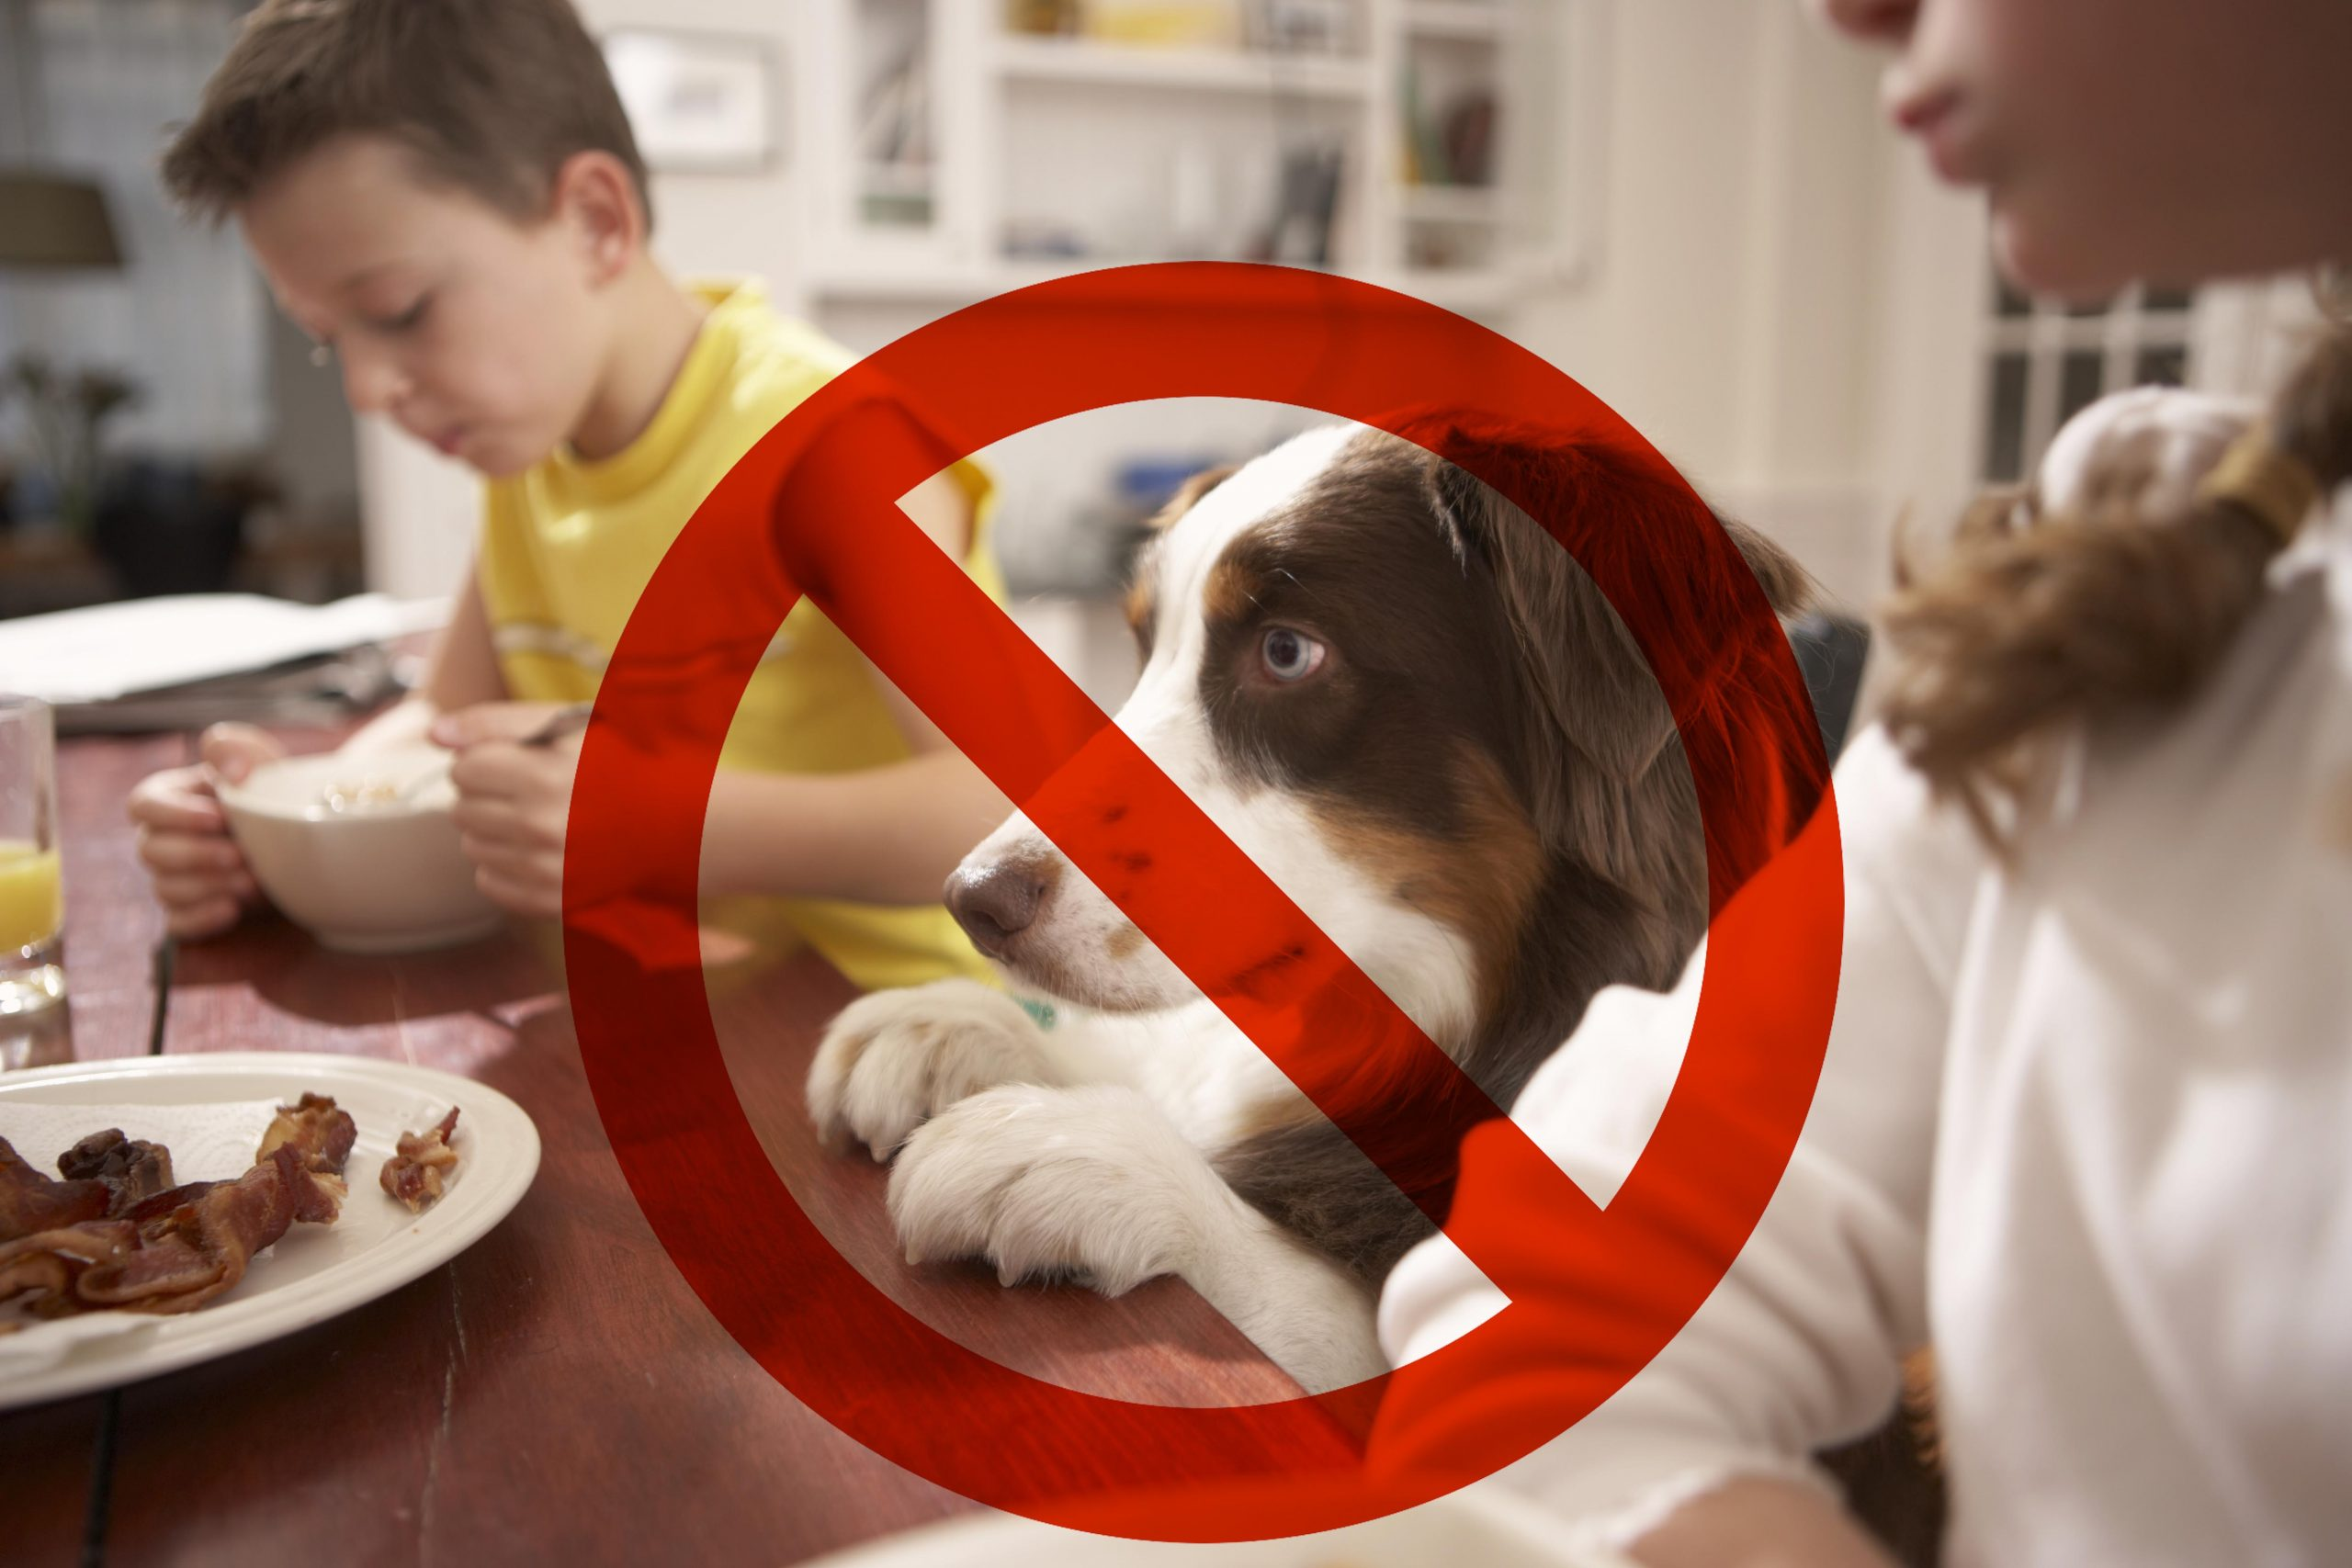 No dogs at the table